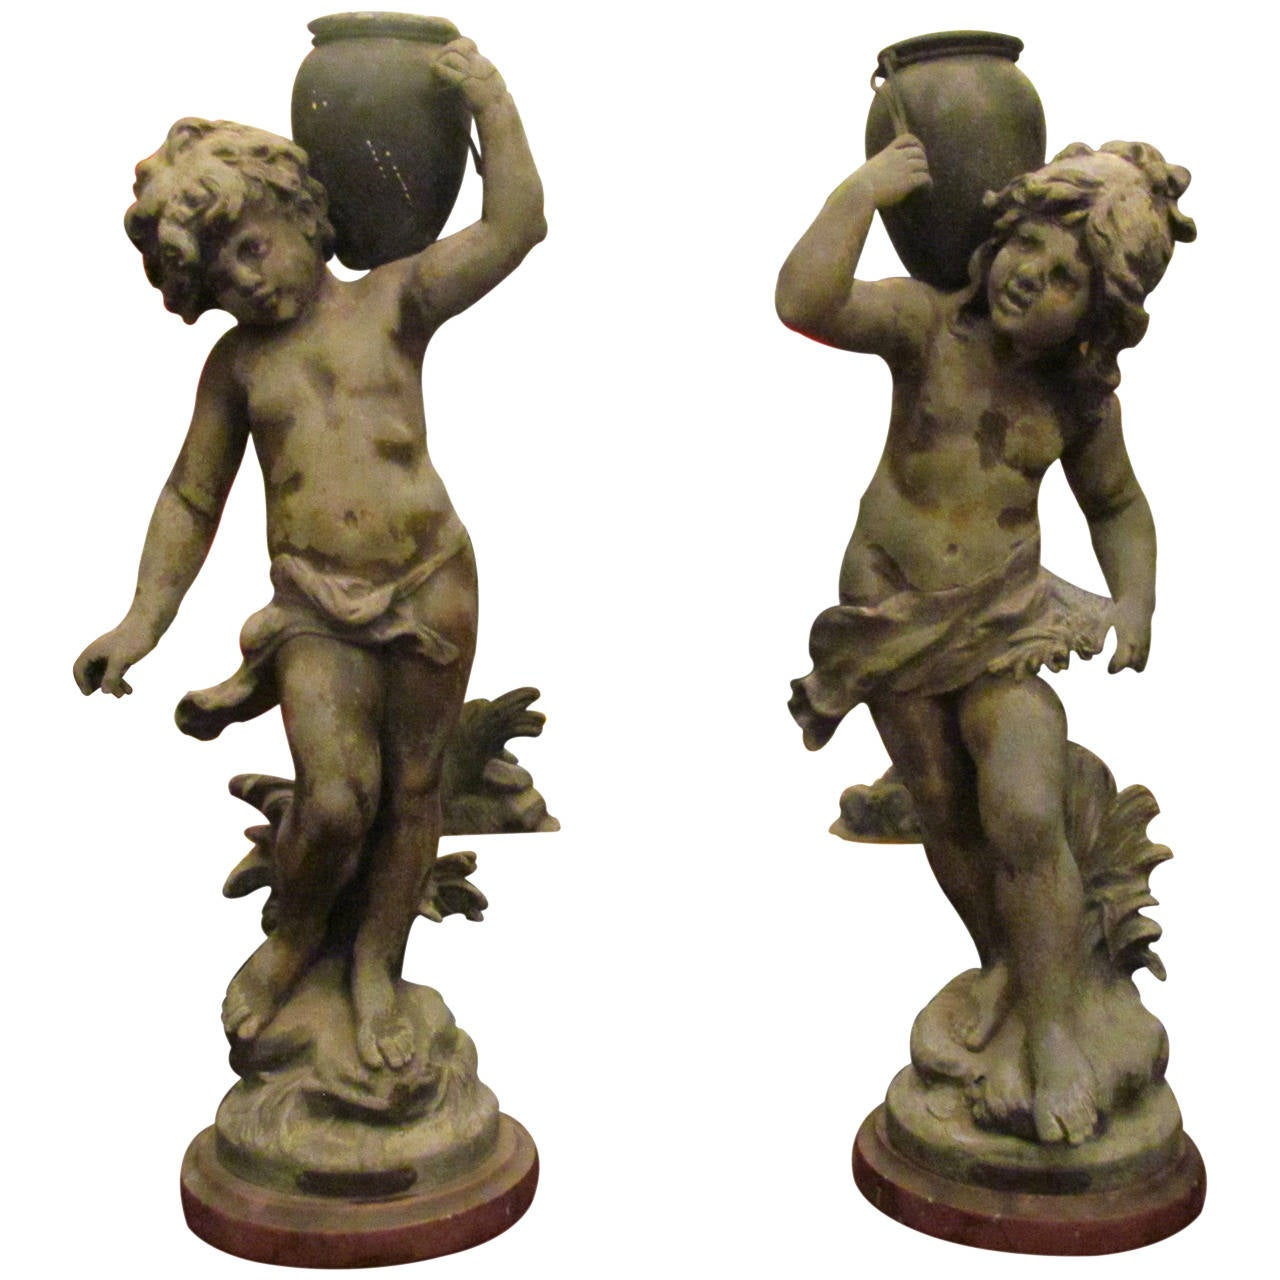 Pair of Pot Metal Water Jug Statues with Marble Base with Brass Nameplates, 1890